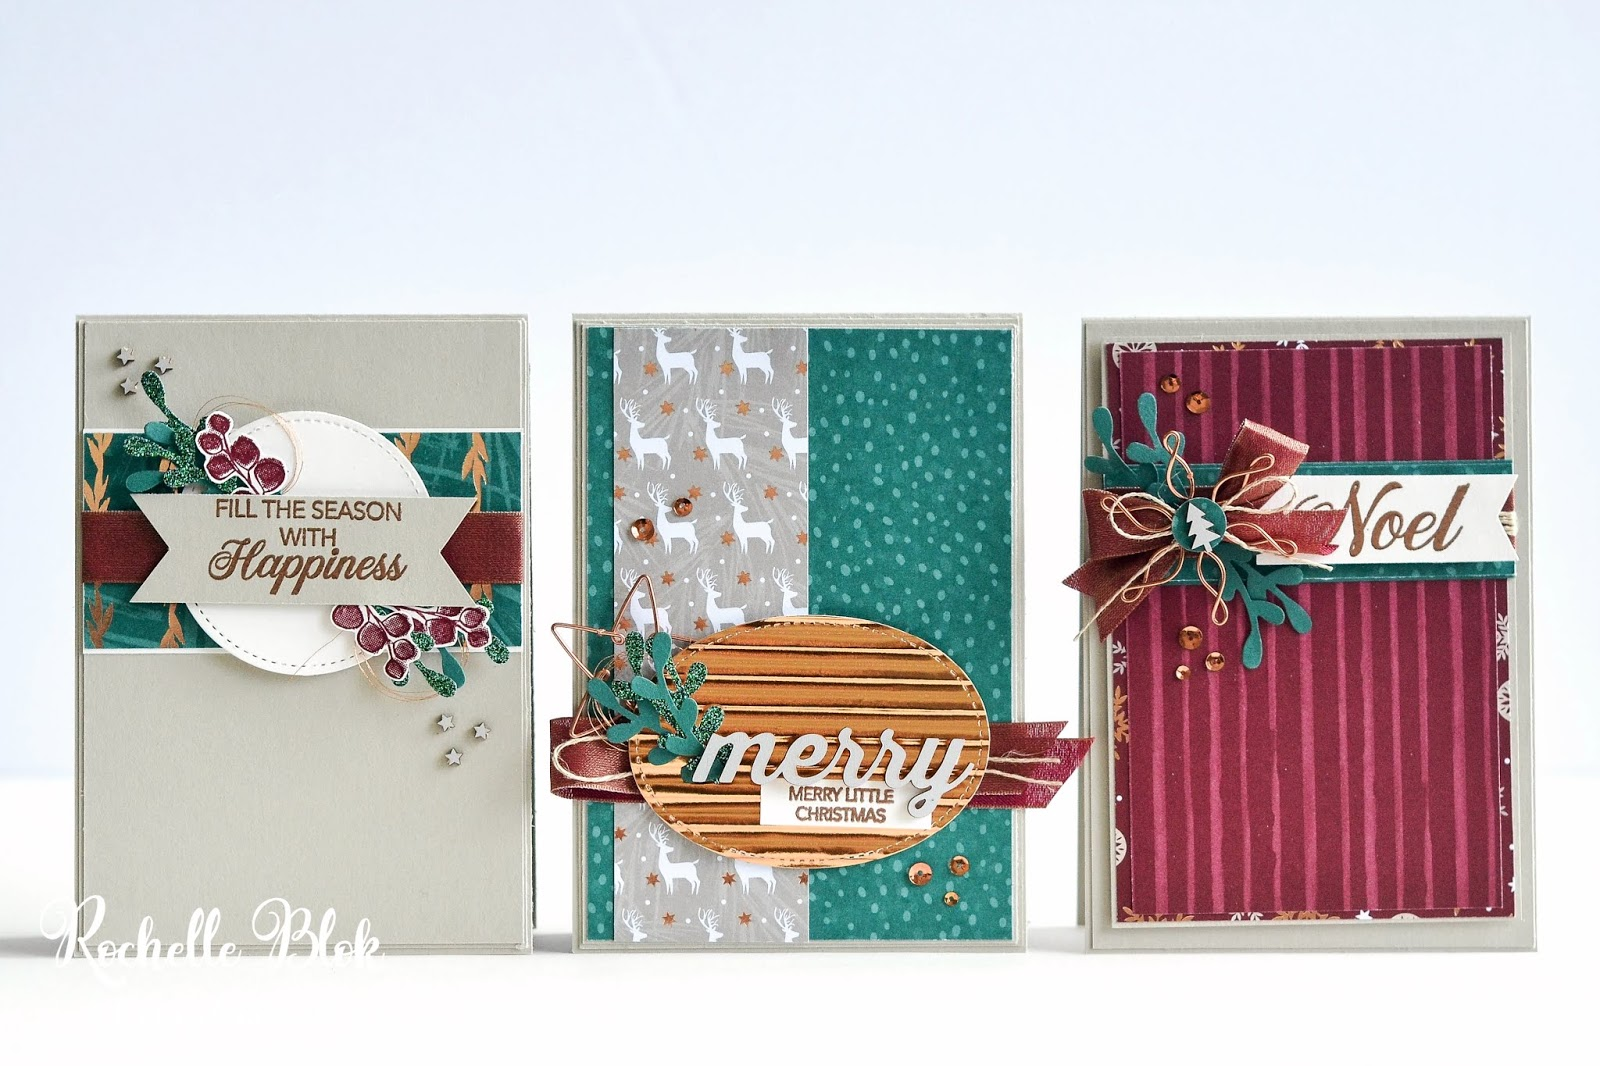 catalogue but noel 2018 The Stamping Blok: Stampin' Up!® 2018 Holiday Catalogue Sneak Peek  catalogue but noel 2018